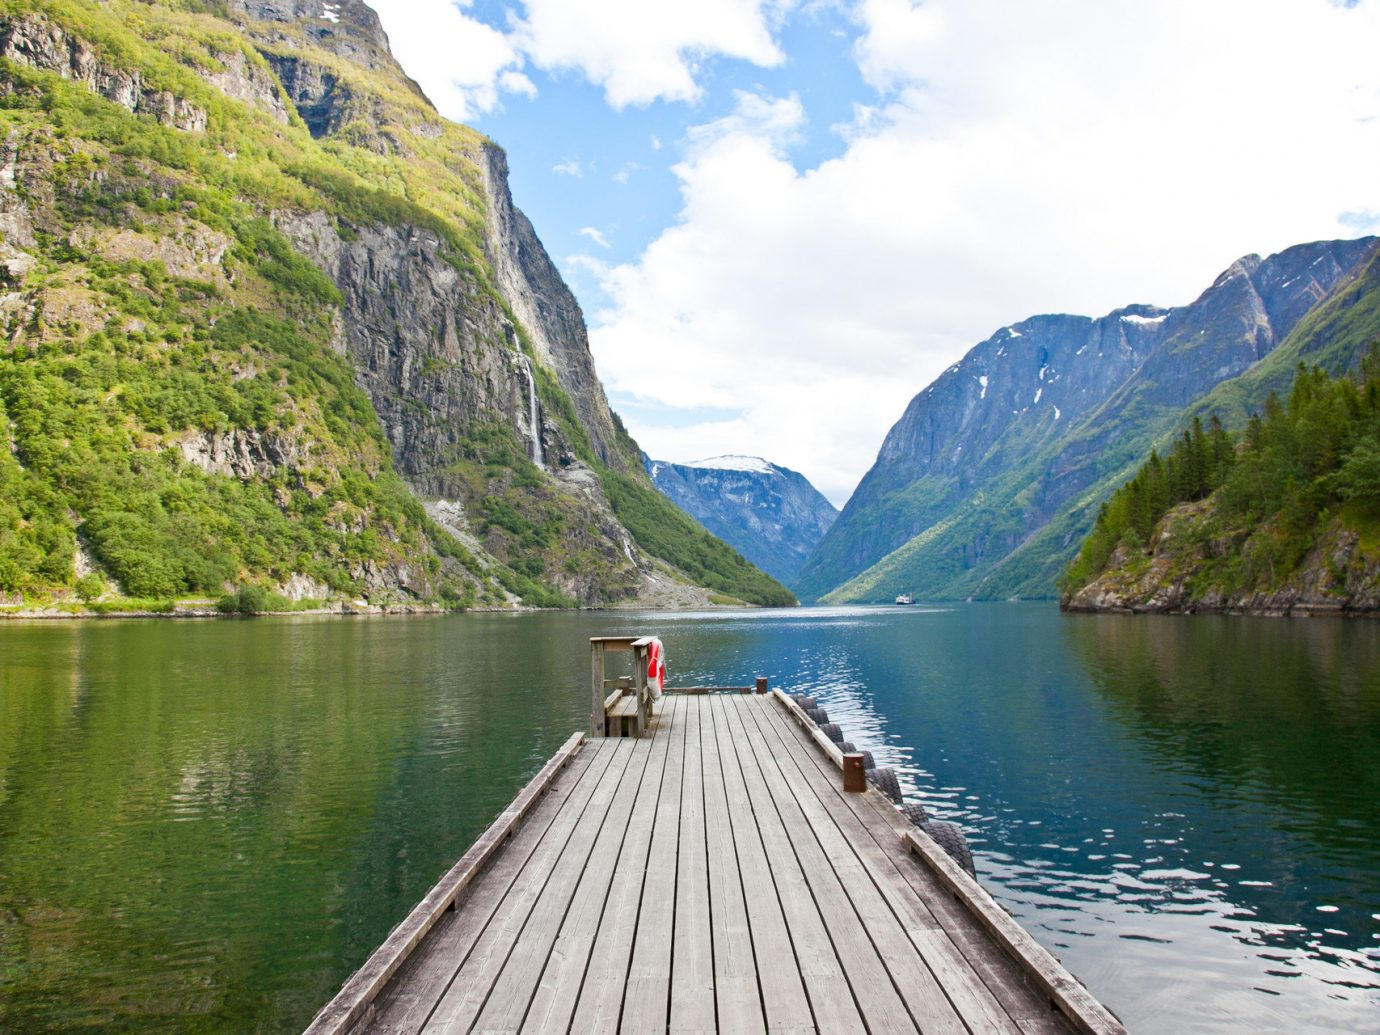 dock Lake Mountains Nature Outdoor Activities Outdoors overlook Scenic views Trip Ideas view viewpoint water mountain outdoor Boat landform River fjord mountain range vacation reservoir loch glacial landform vehicle alps traveling surrounded